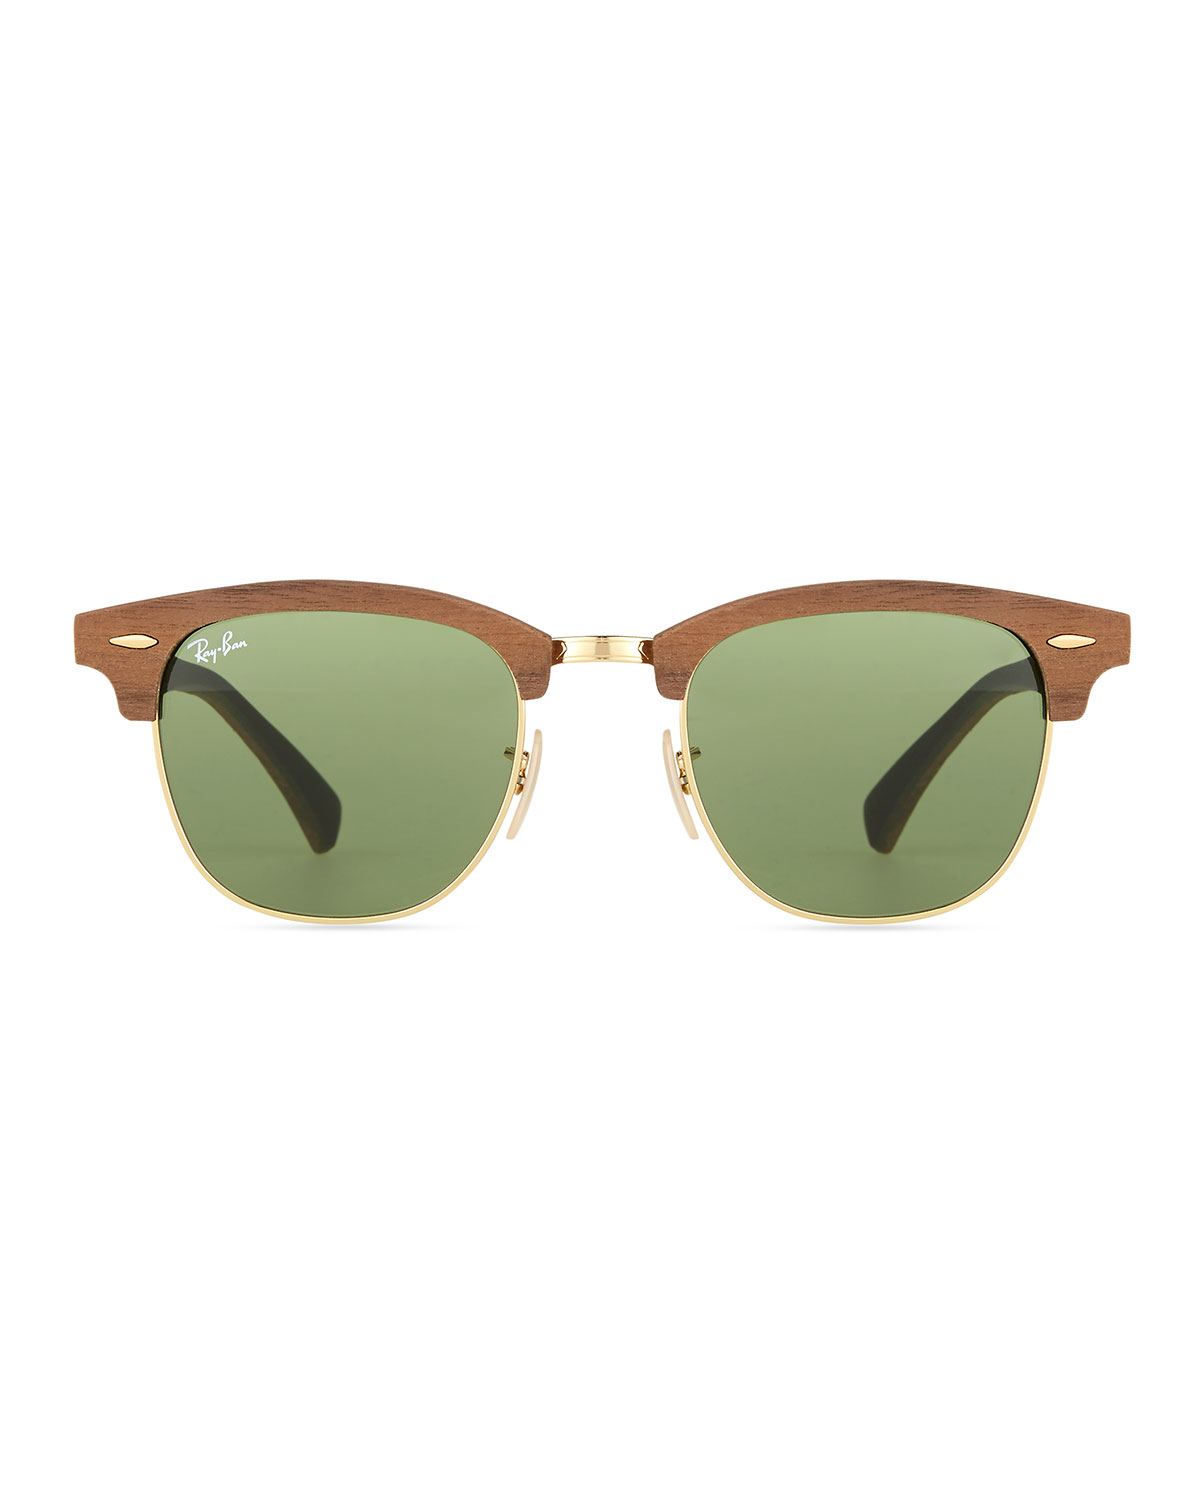 ray ban clubmaster sunglasses cheap  ray ban clubmaster wood cheap